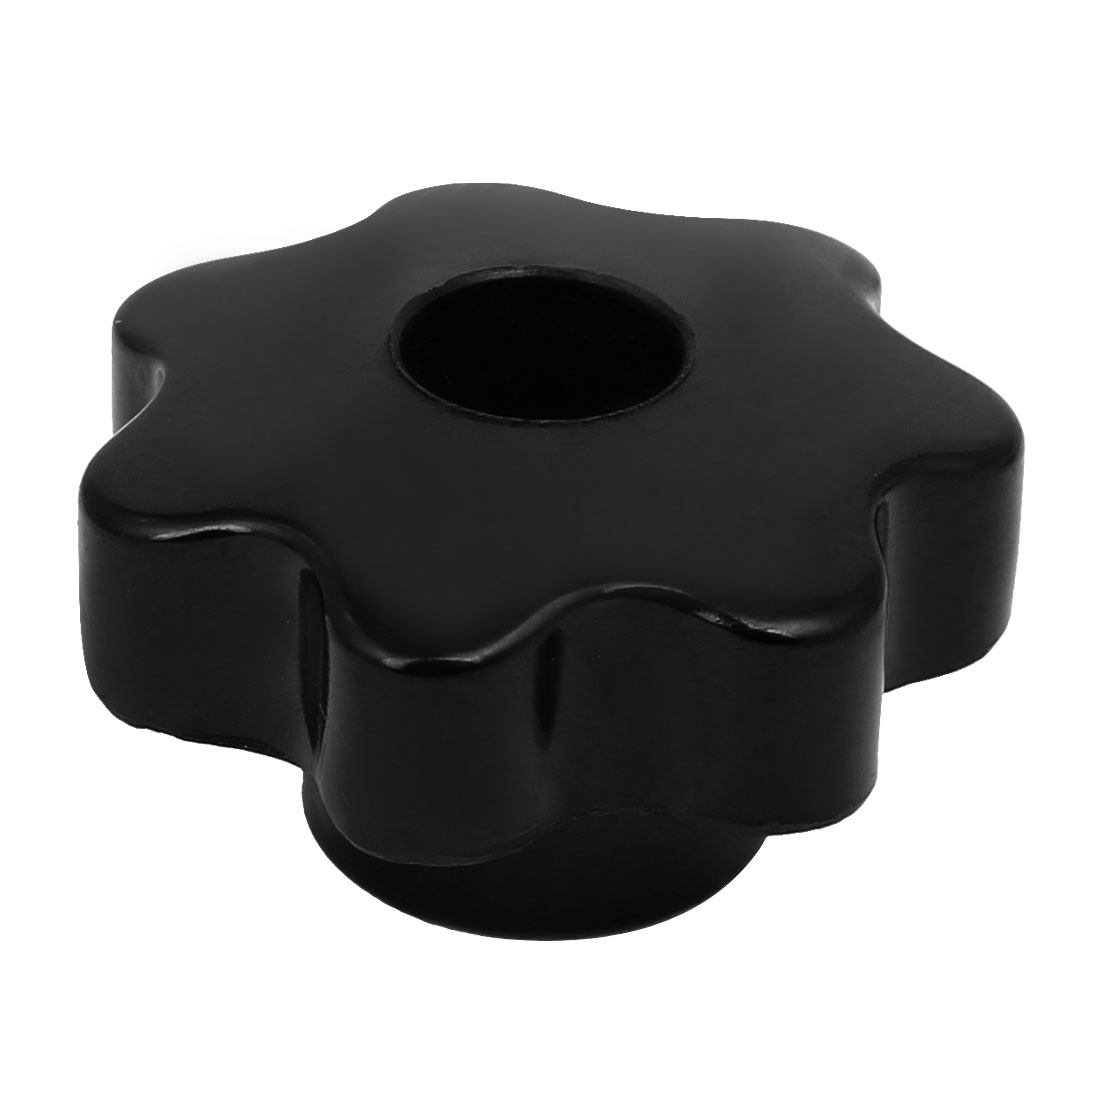 M12x50mm Plastic Seven Pointed Star Head Through Hole Machinery Clamping Knob